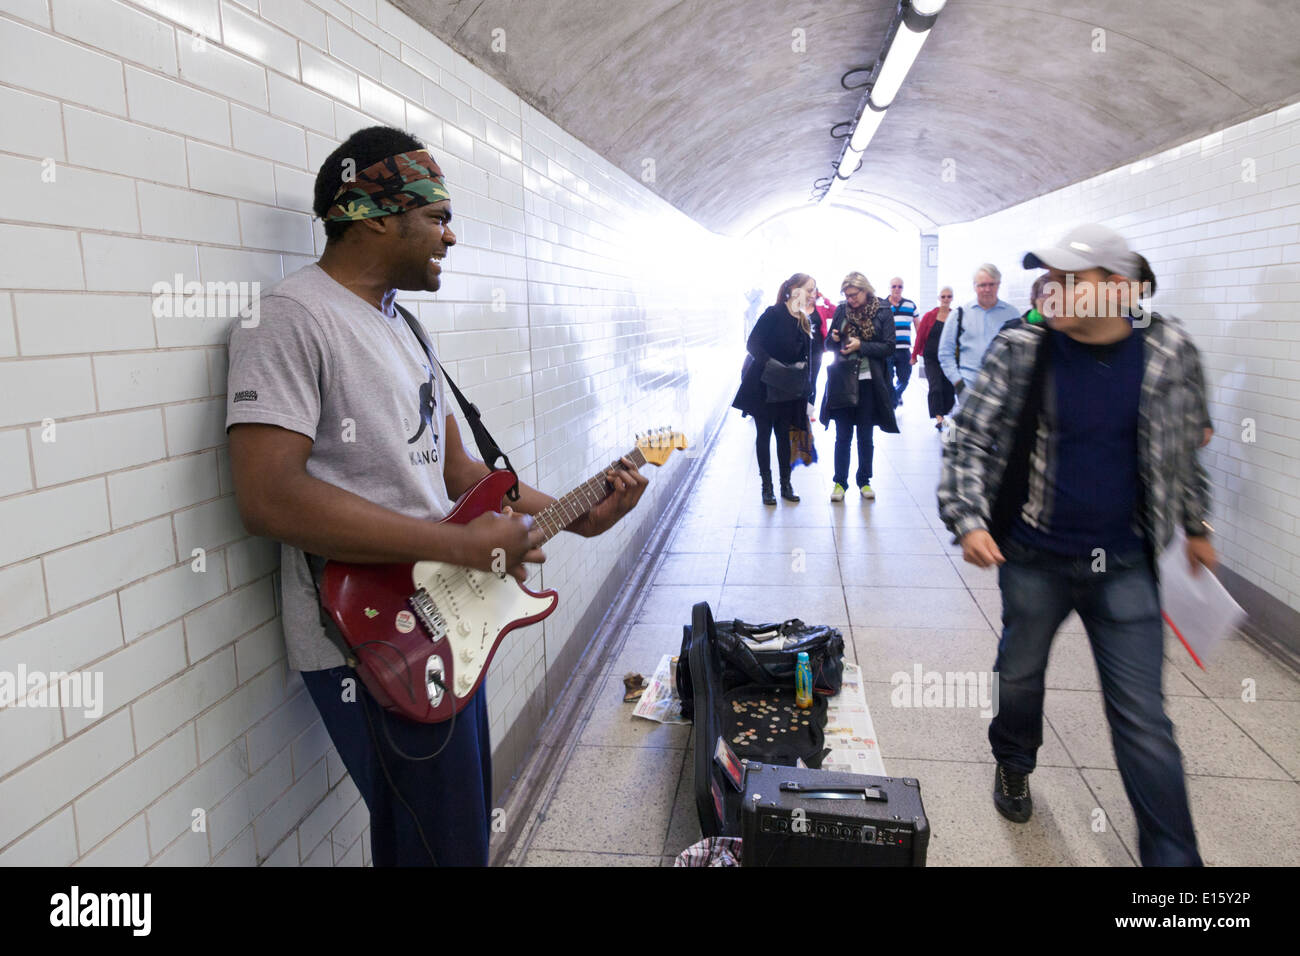 Busker playing electric guitar in underpass. - Stock Image